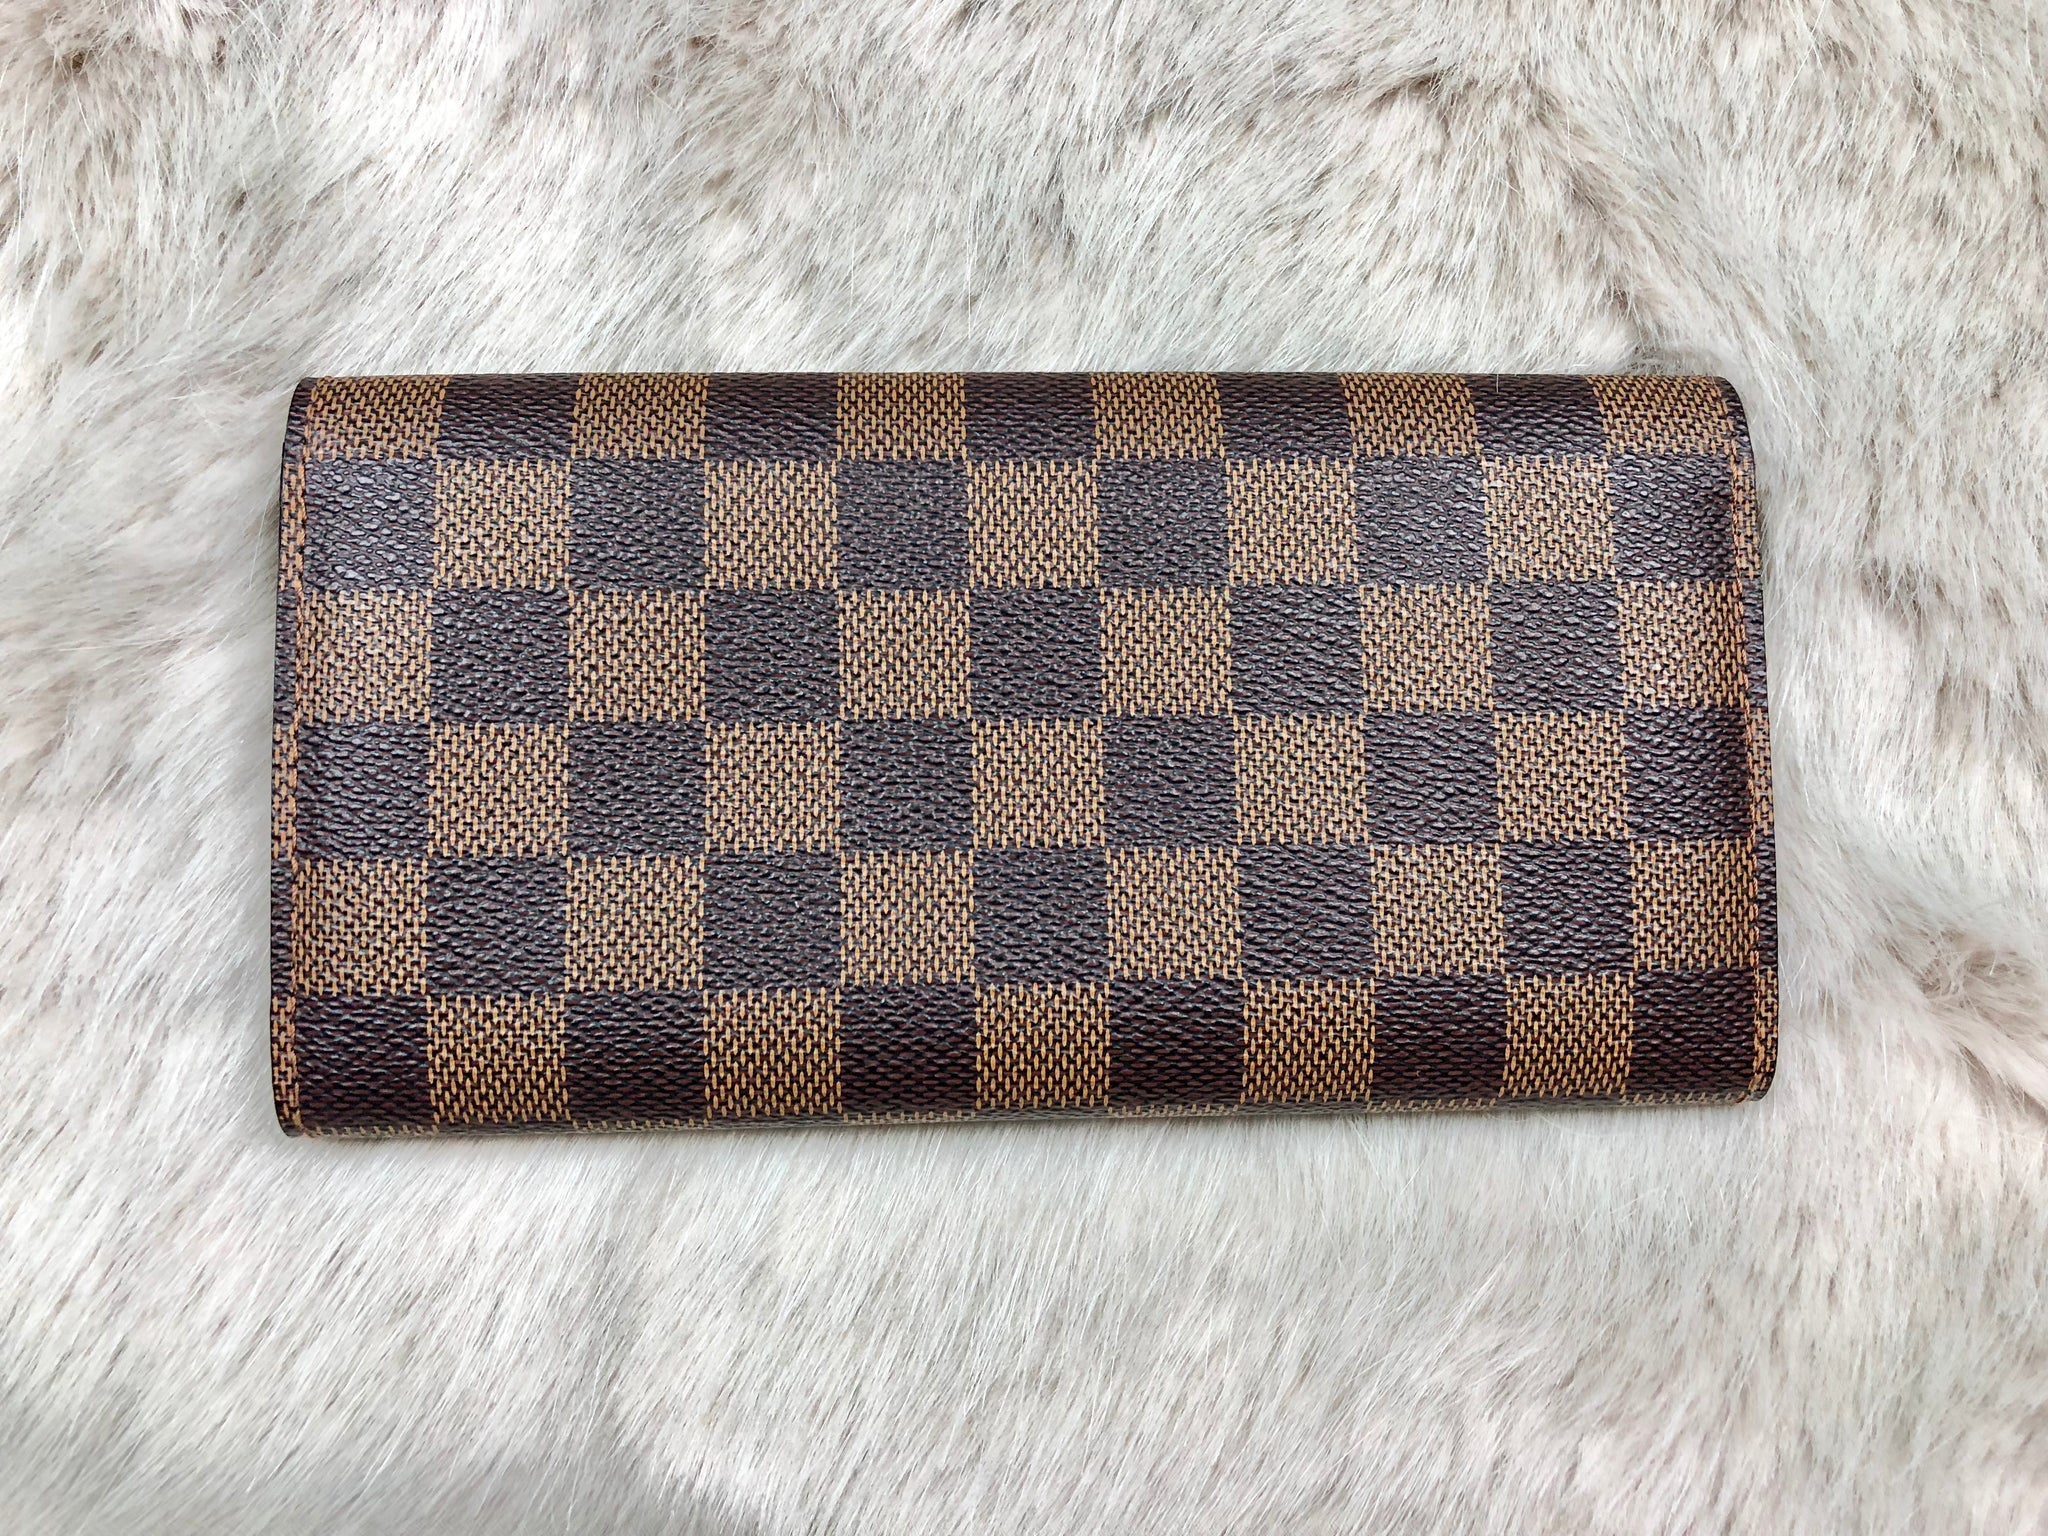 LOUIS VUITTON Damier Ebene Long Wallet